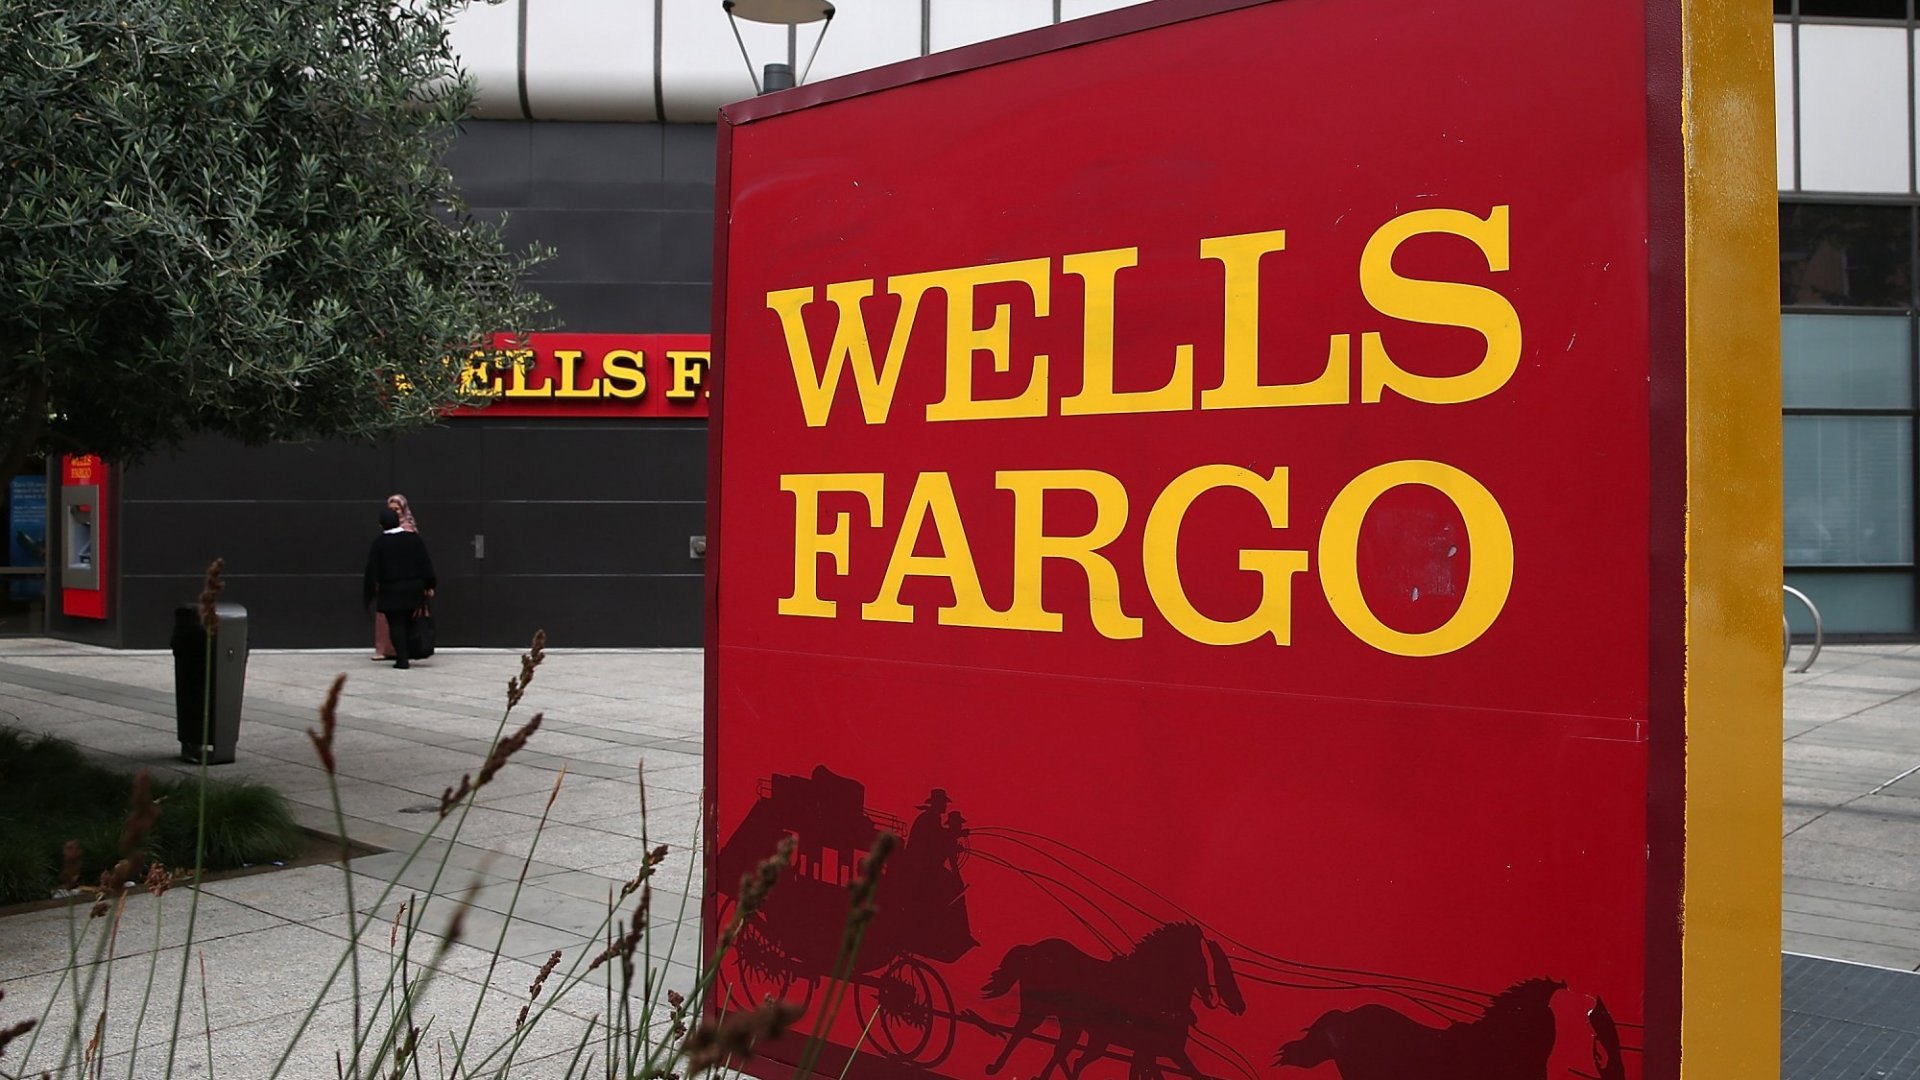 What Entrepreneurs Can Learn From Wells Fargo's Double Disaster